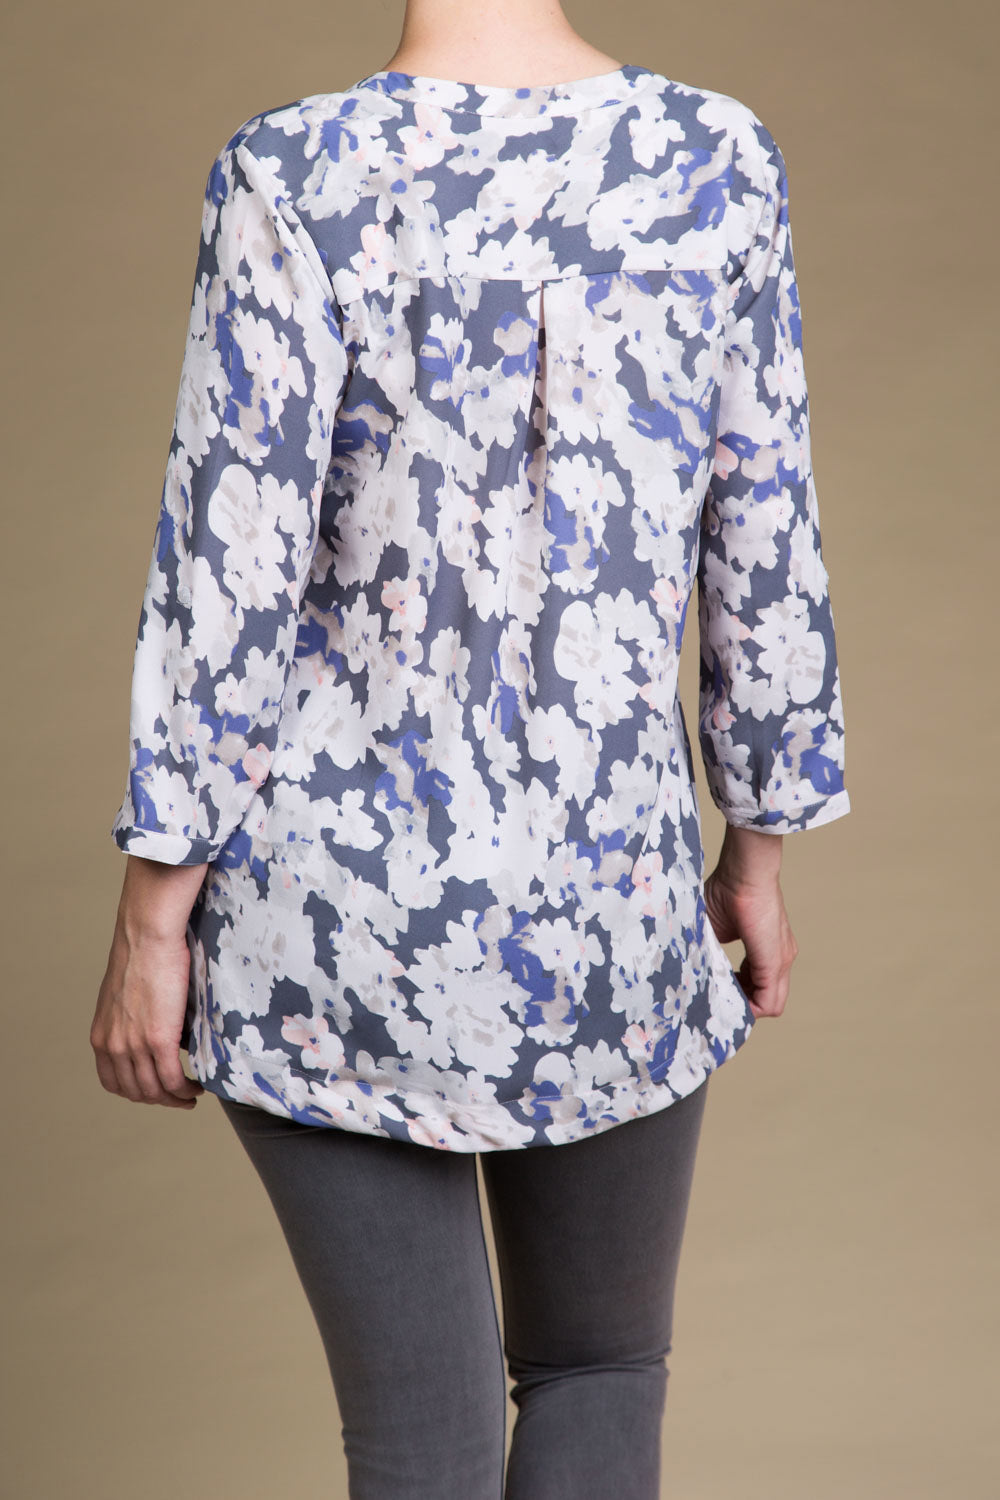 Type 2 Soft Bloom Top